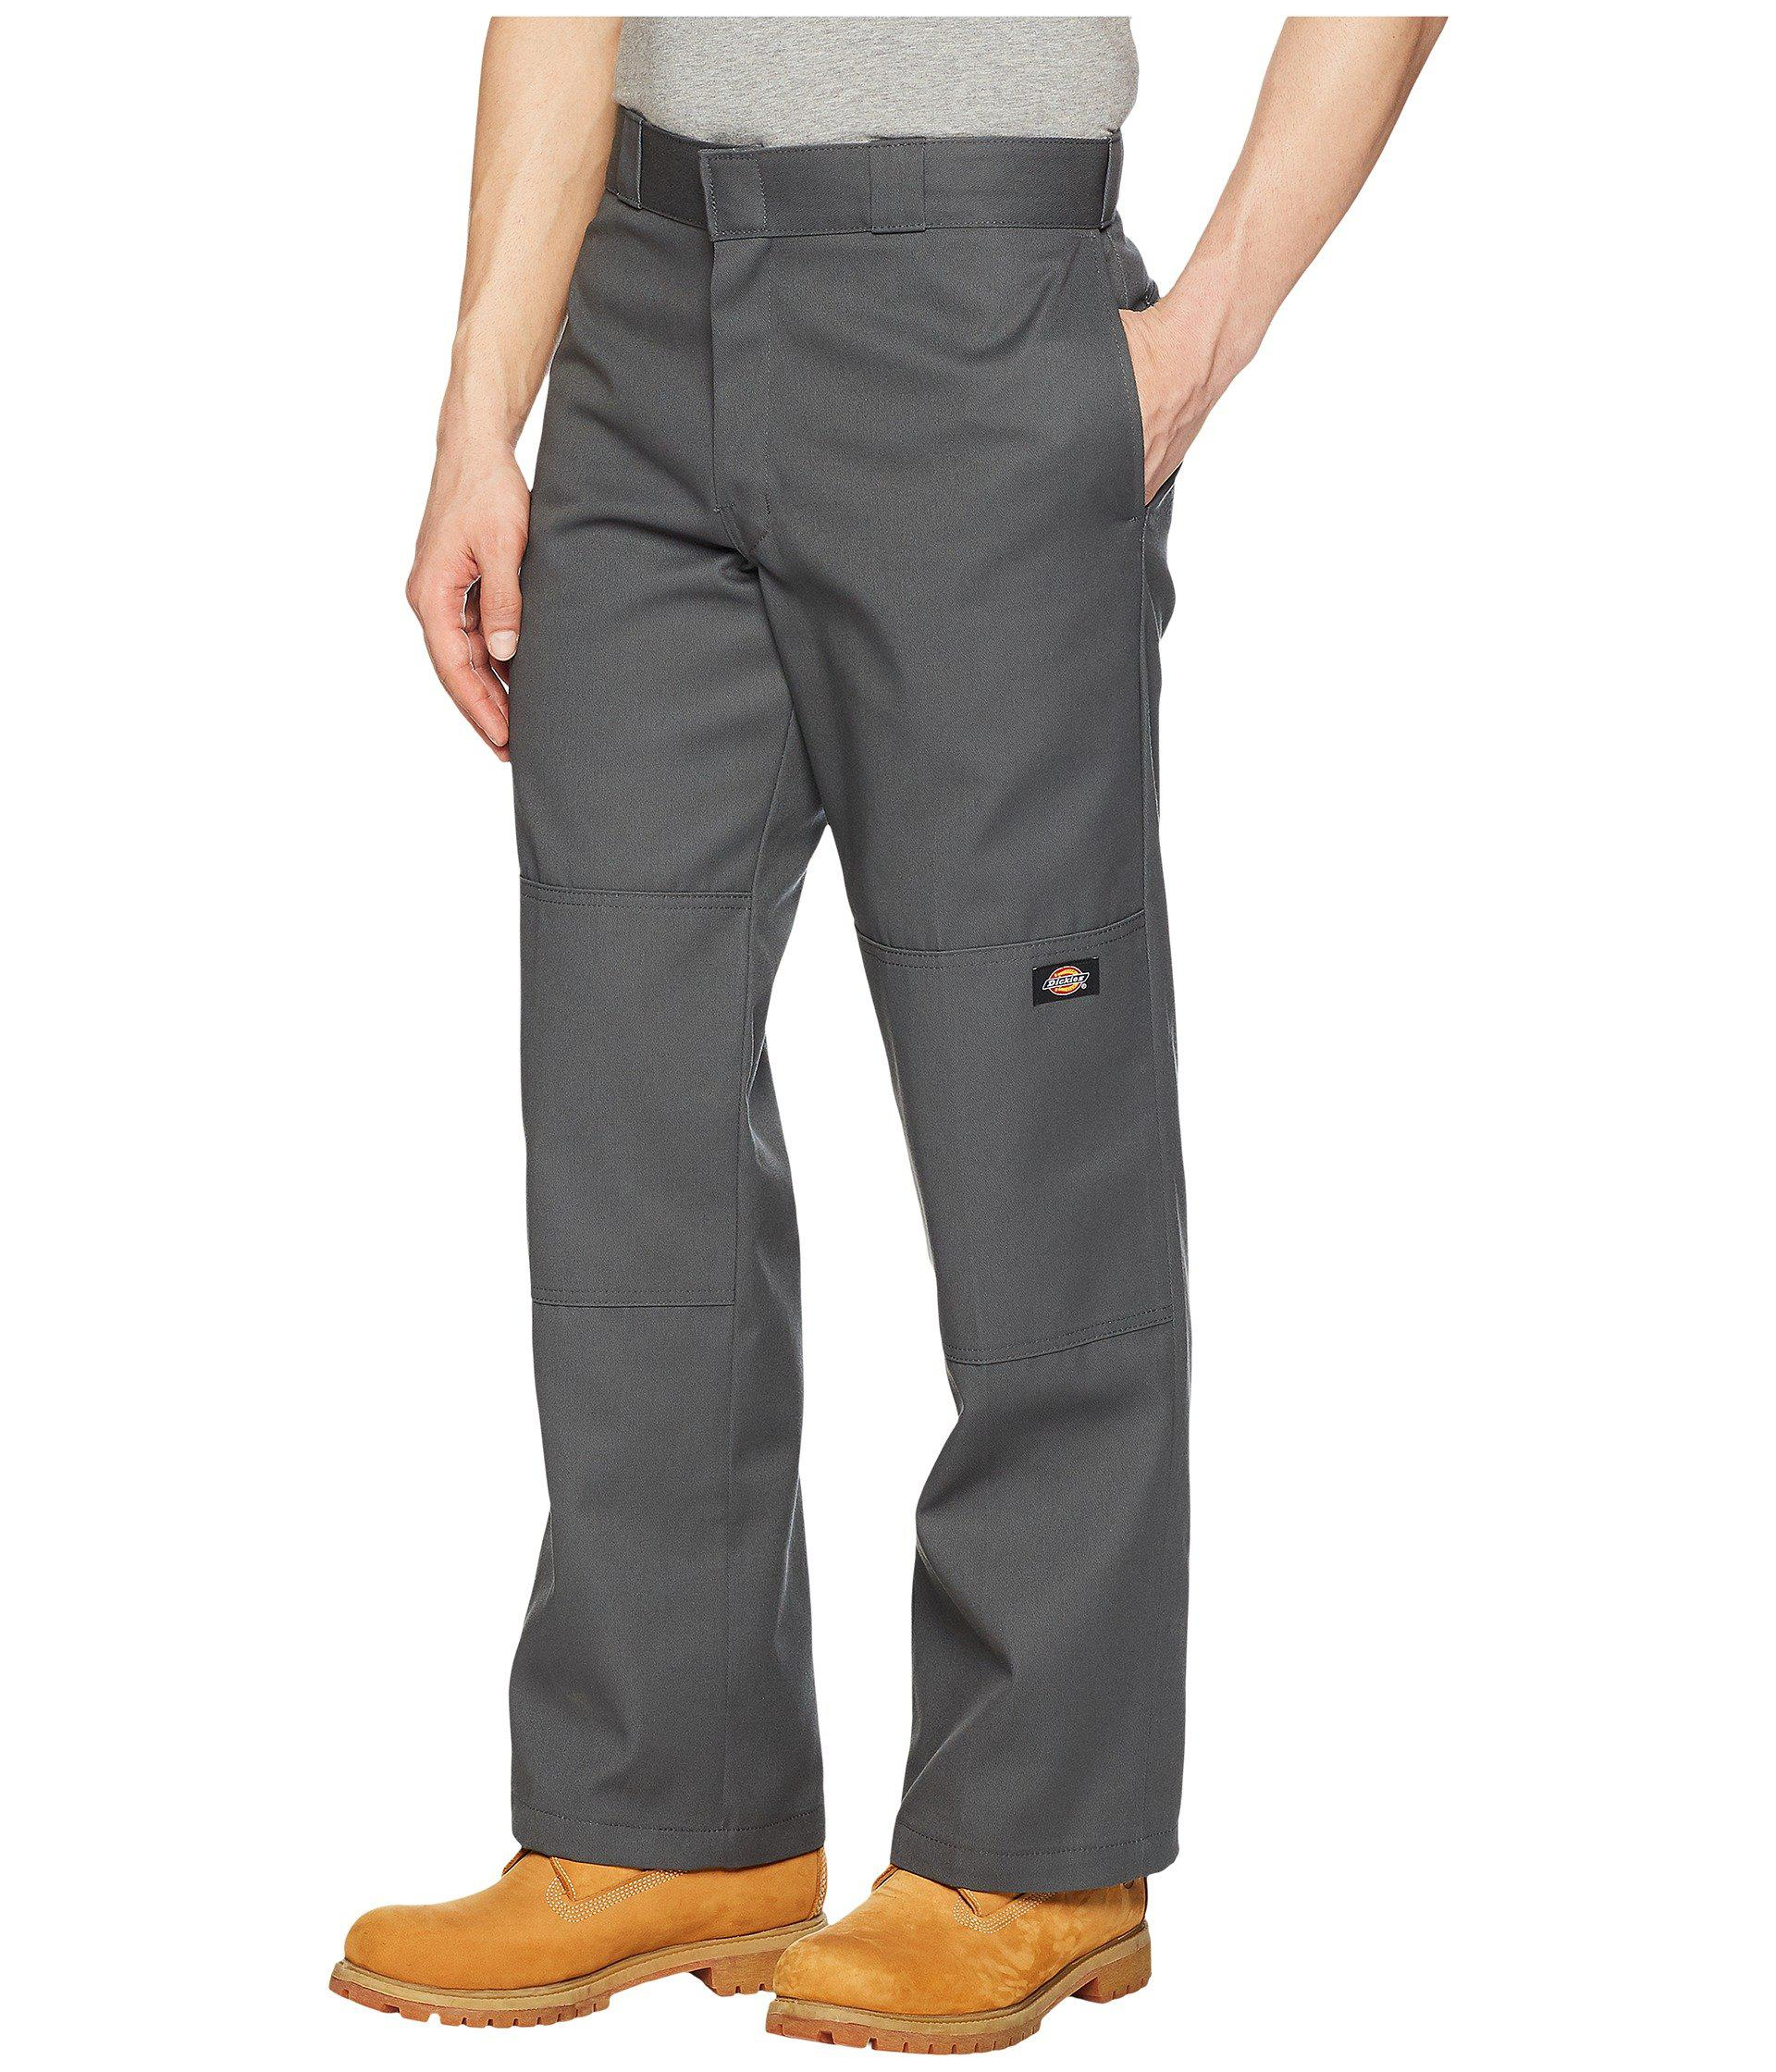 f79b5b274bc Lyst - Dickies Double Knee Work Pant (silver Gray) Men s Clothing in Gray  for Men